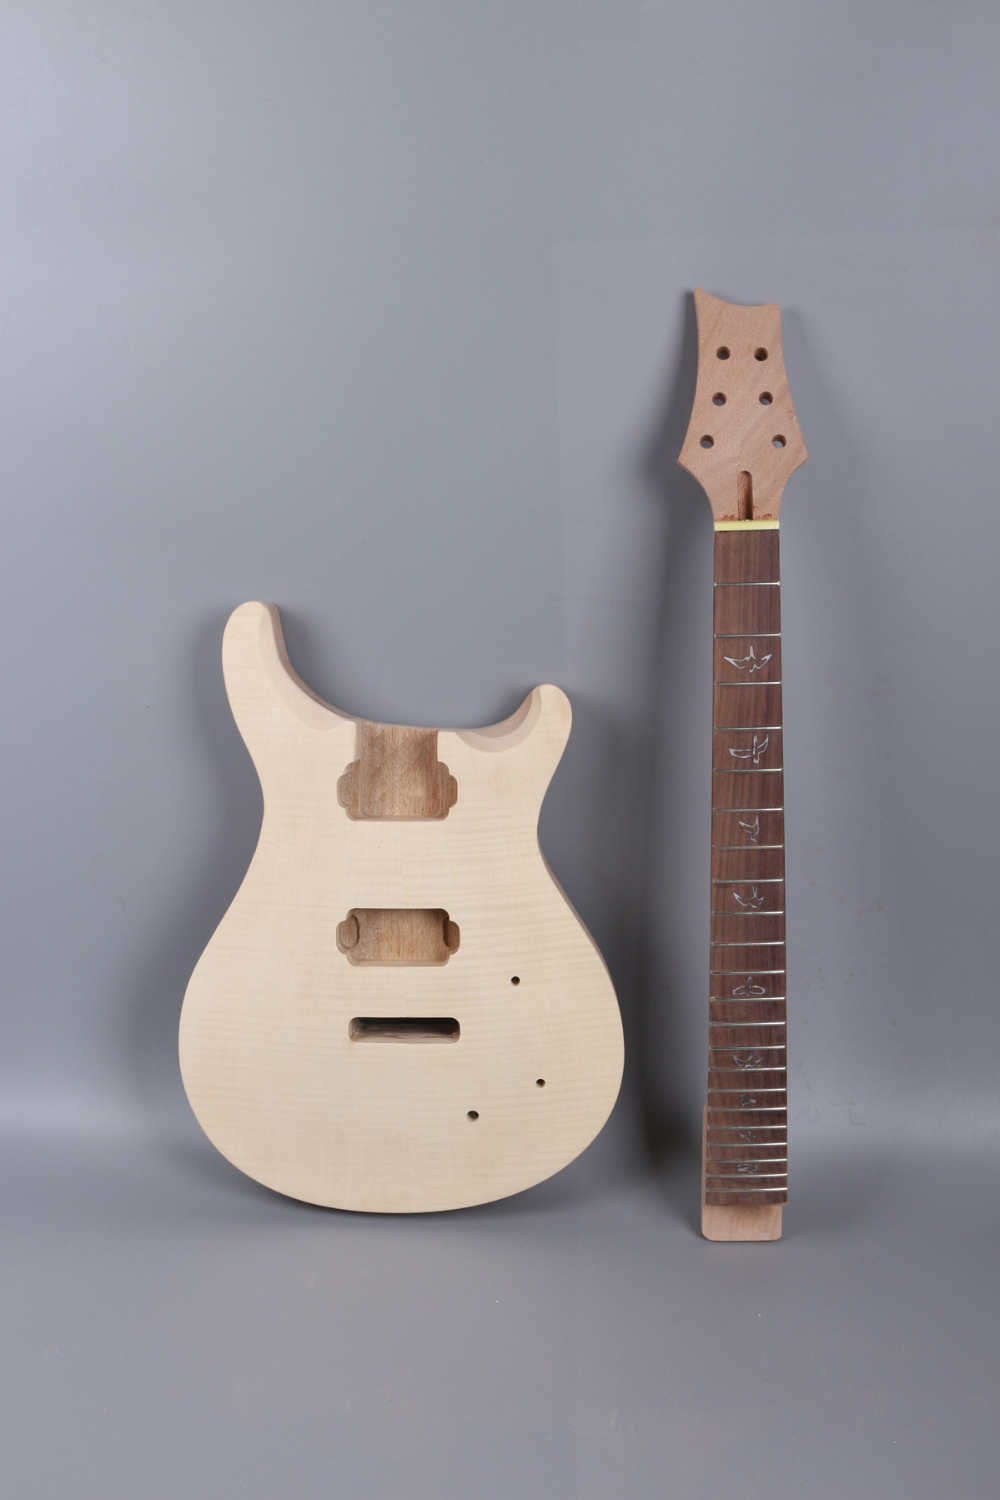 24.75 inch 22 fret electric guitar Body flam maple top Solid wood Diy guitar parts# - mahogany made  and rosewood fingerboard diy electric bass guitar kit bolt on solid mahogany body canadian maple neck mx 036